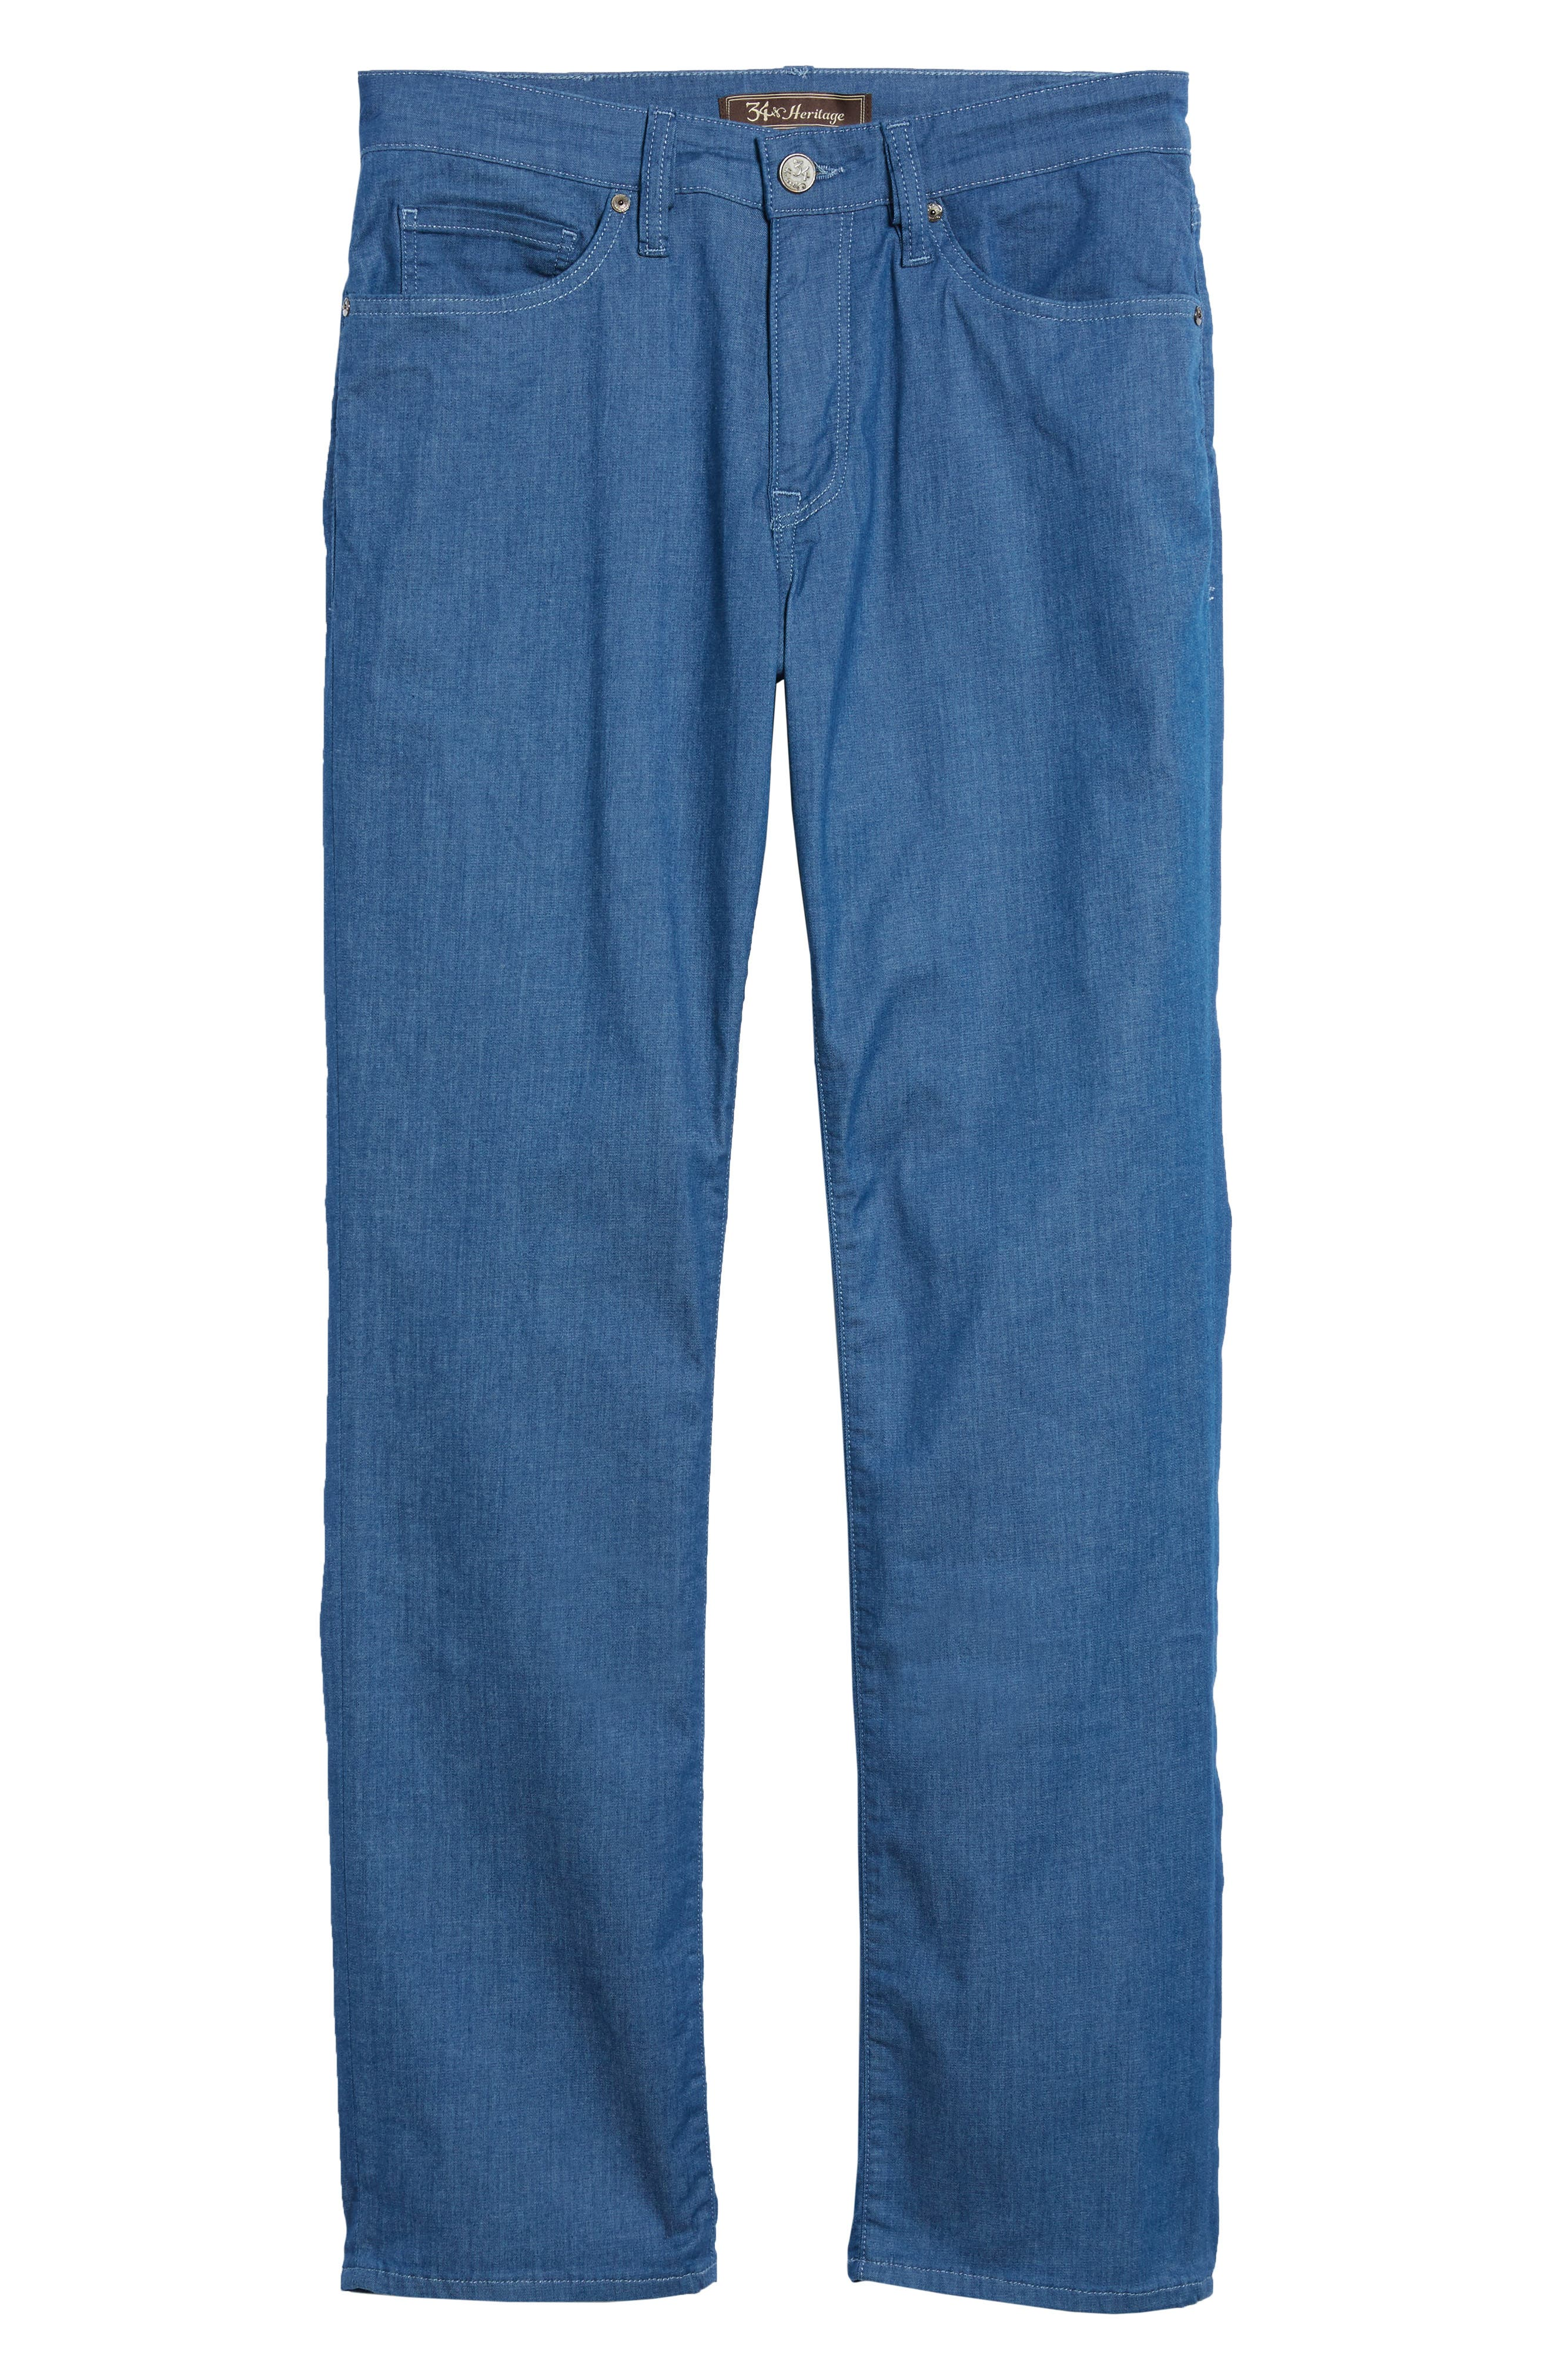 Charisma Relaxed Fit Jeans,                             Alternate thumbnail 6, color,                             420